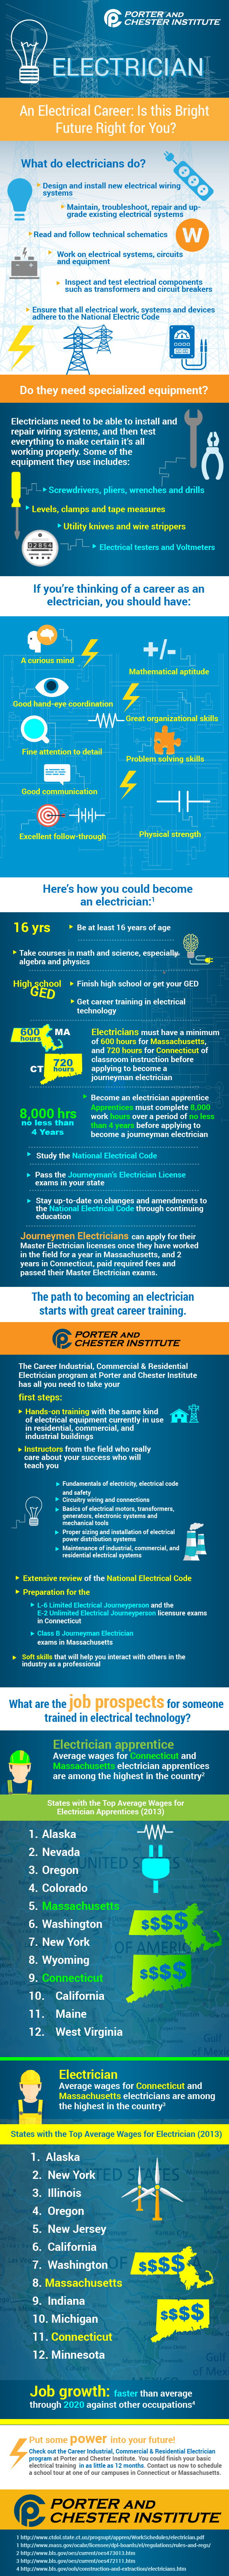 Is an electrical career right for you? - Infographic